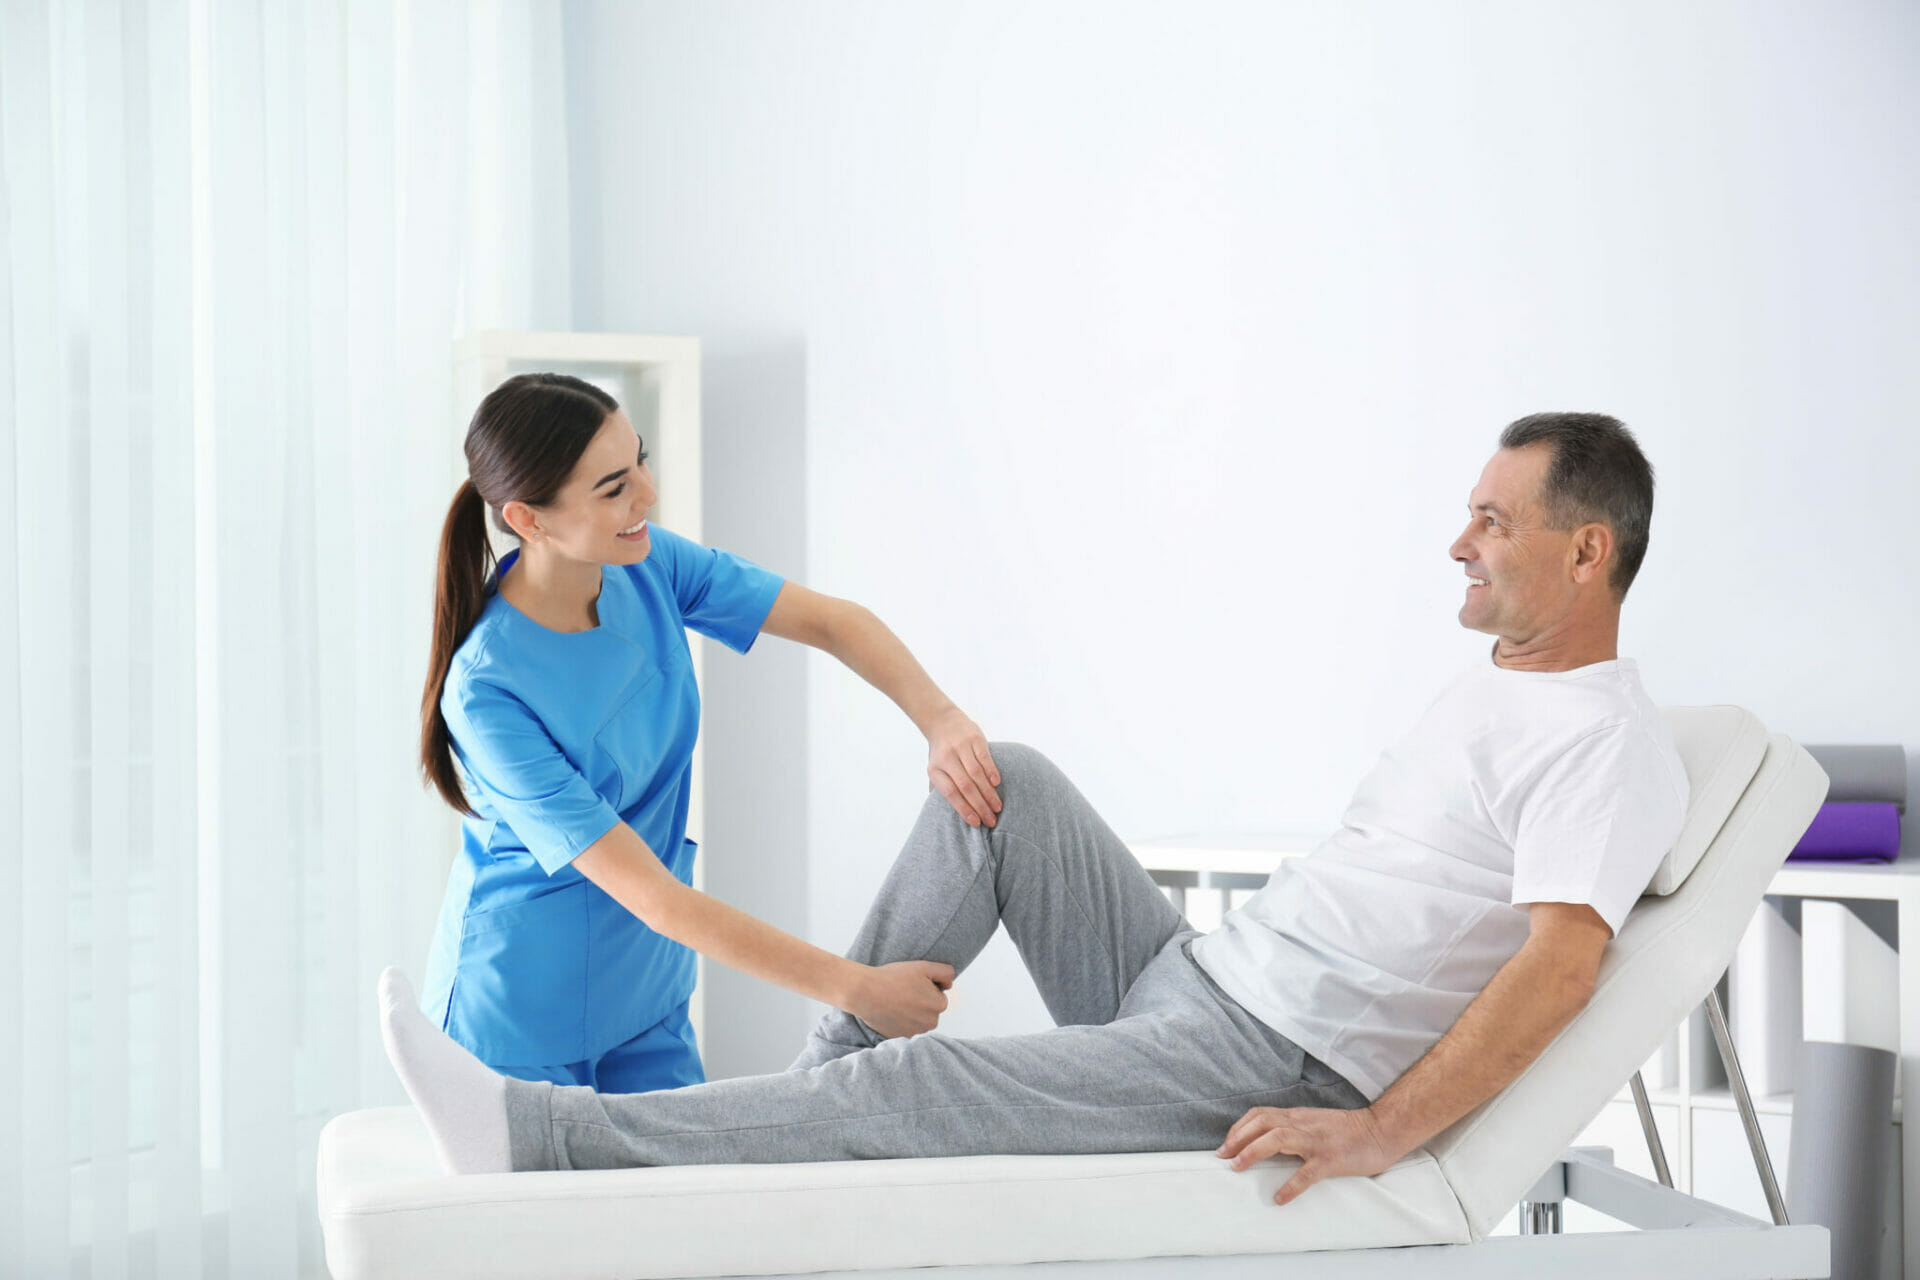 Rehab Exercises for Meniscal (Cartilage) Tear